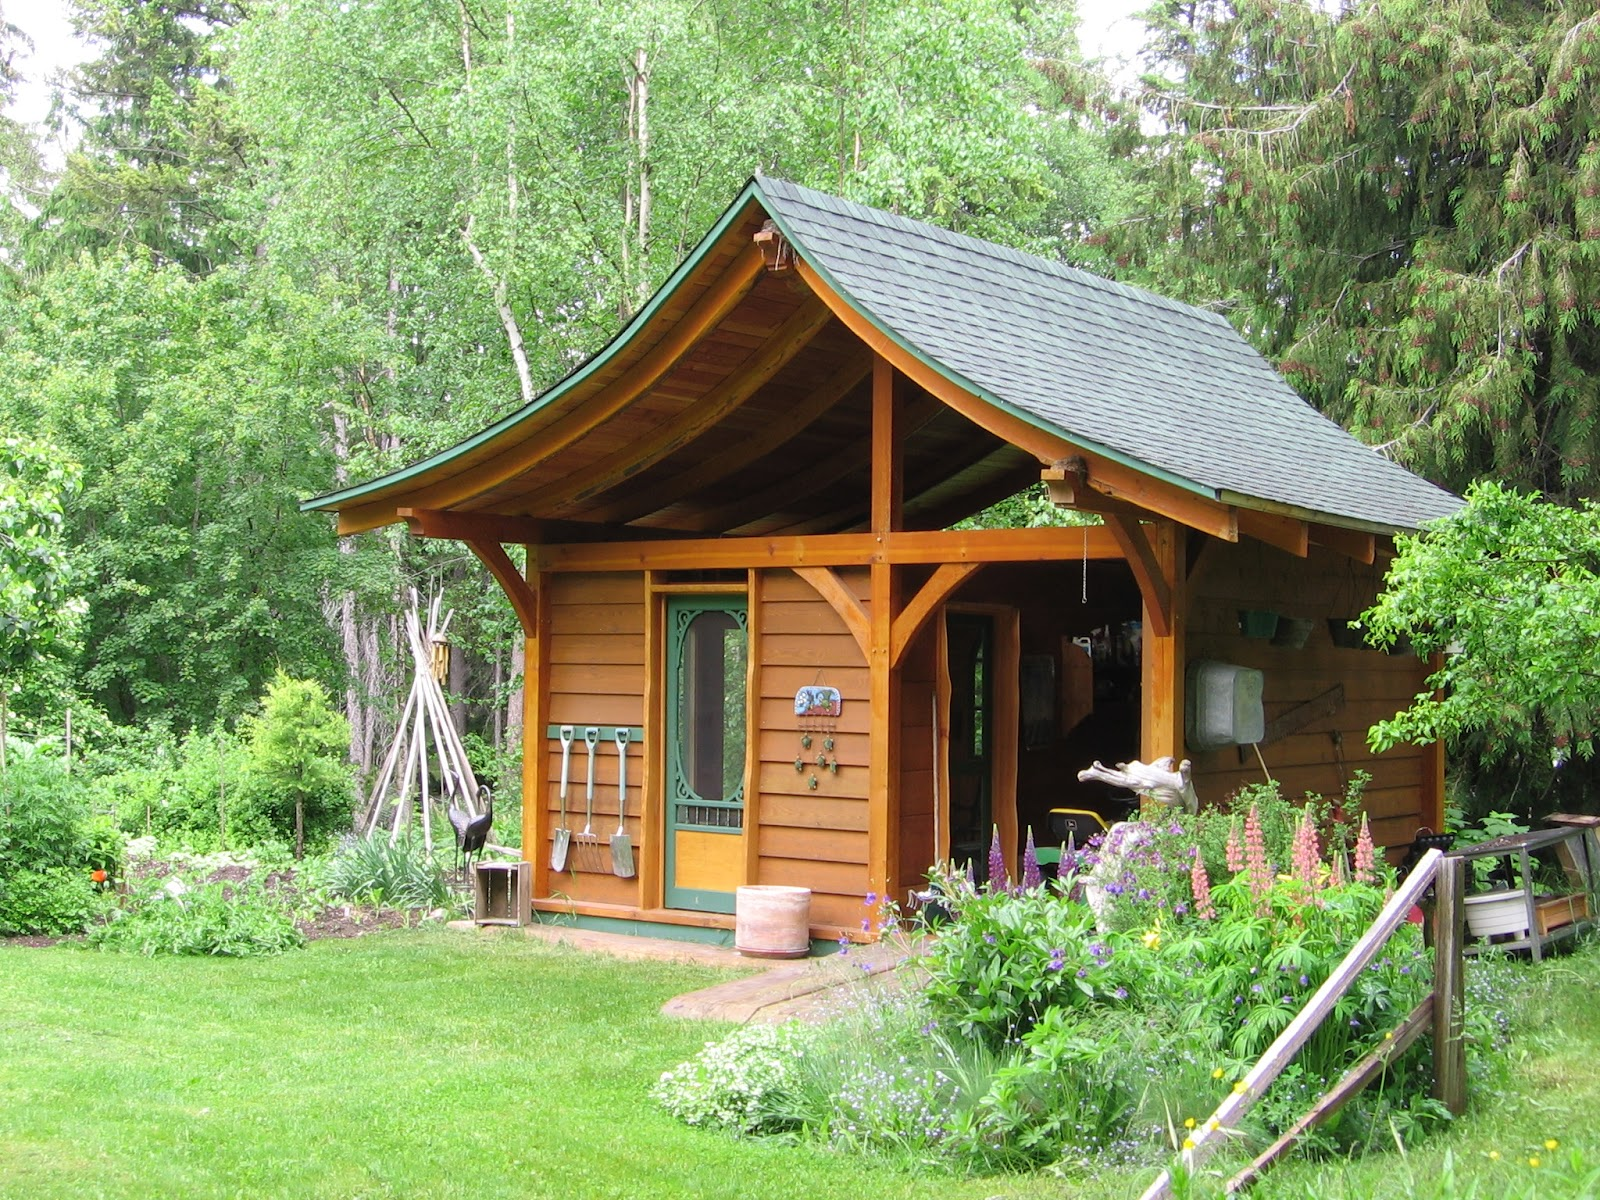 A-traditional-wooden-garden-shed